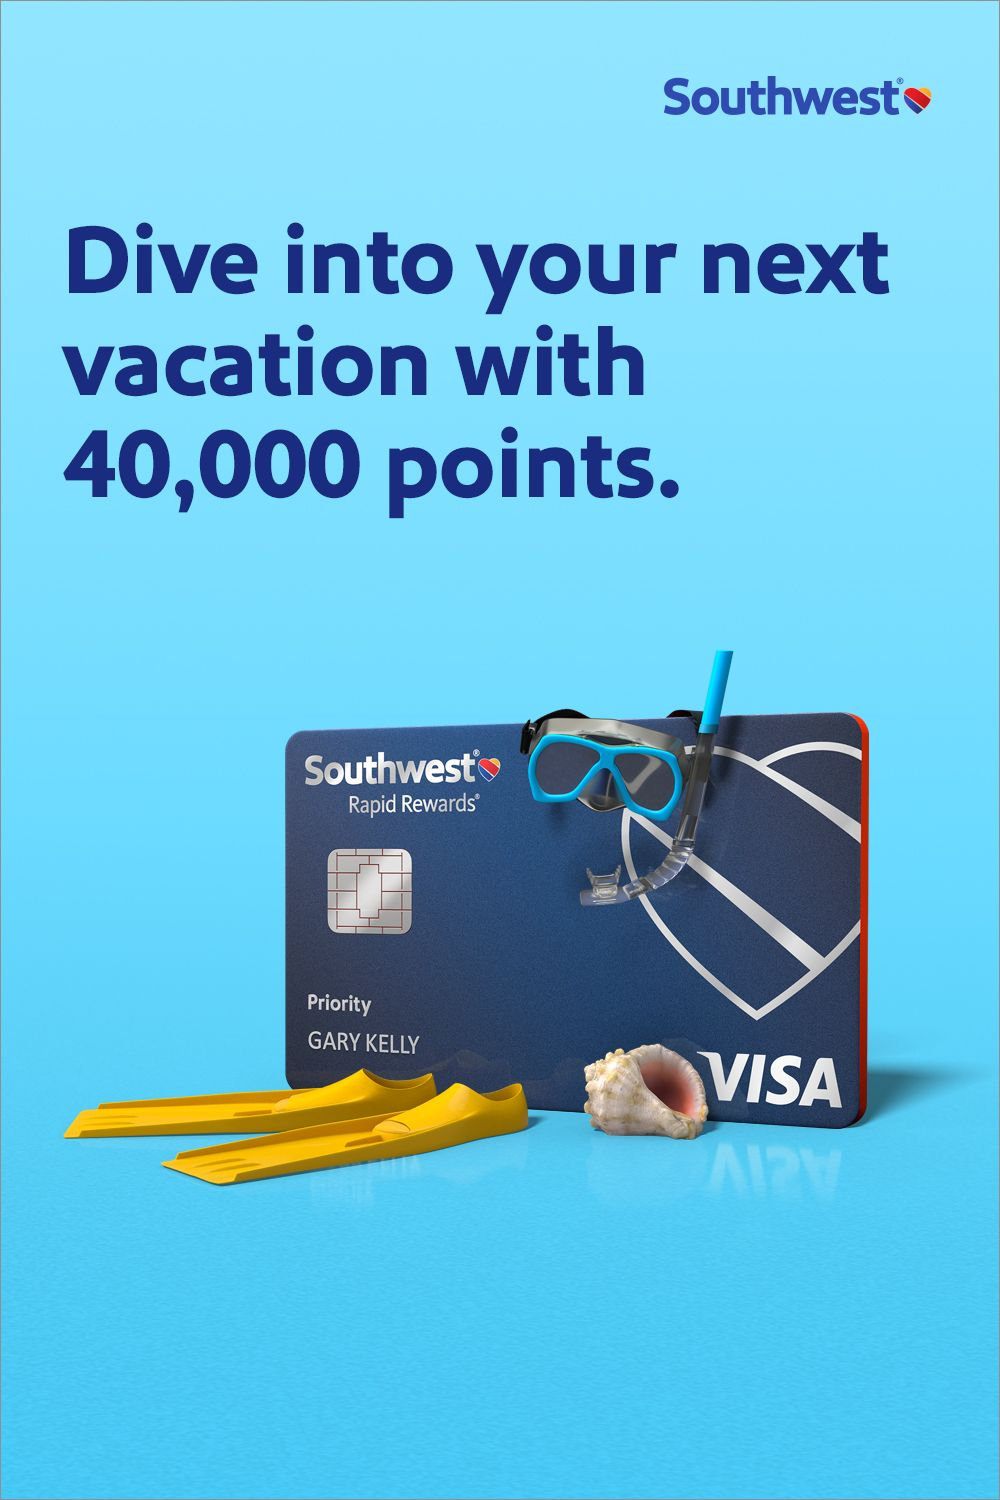 Earn 40,000 points with the Rapid Rewards® Priority Credit